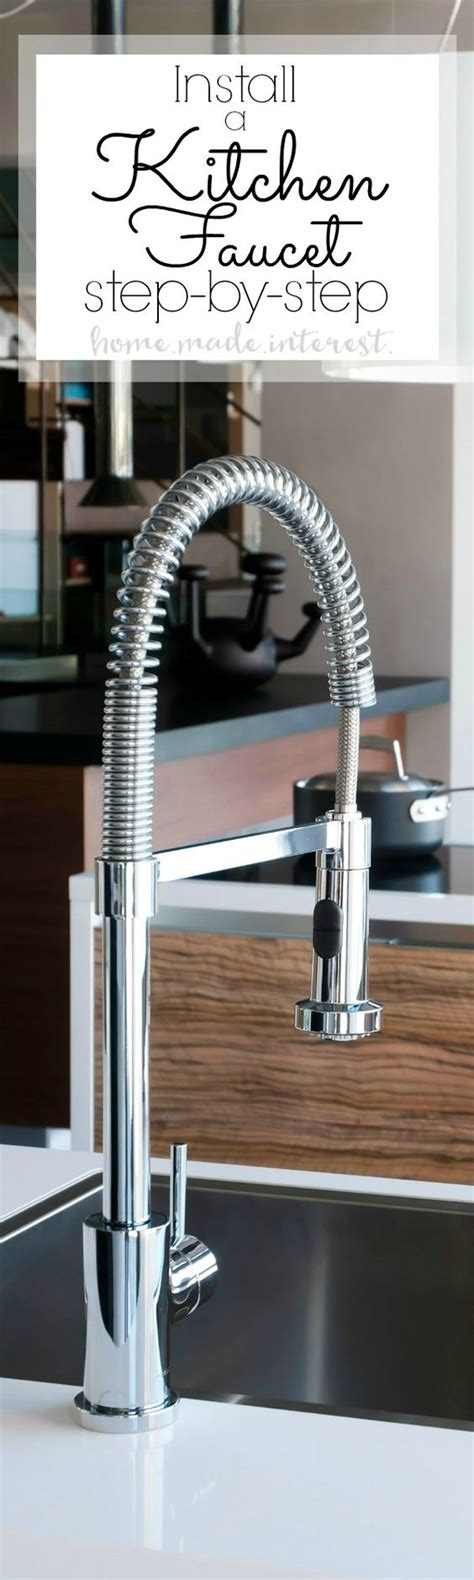 diy kitchen faucet how to install a kitchen faucet diy tutorial faucets